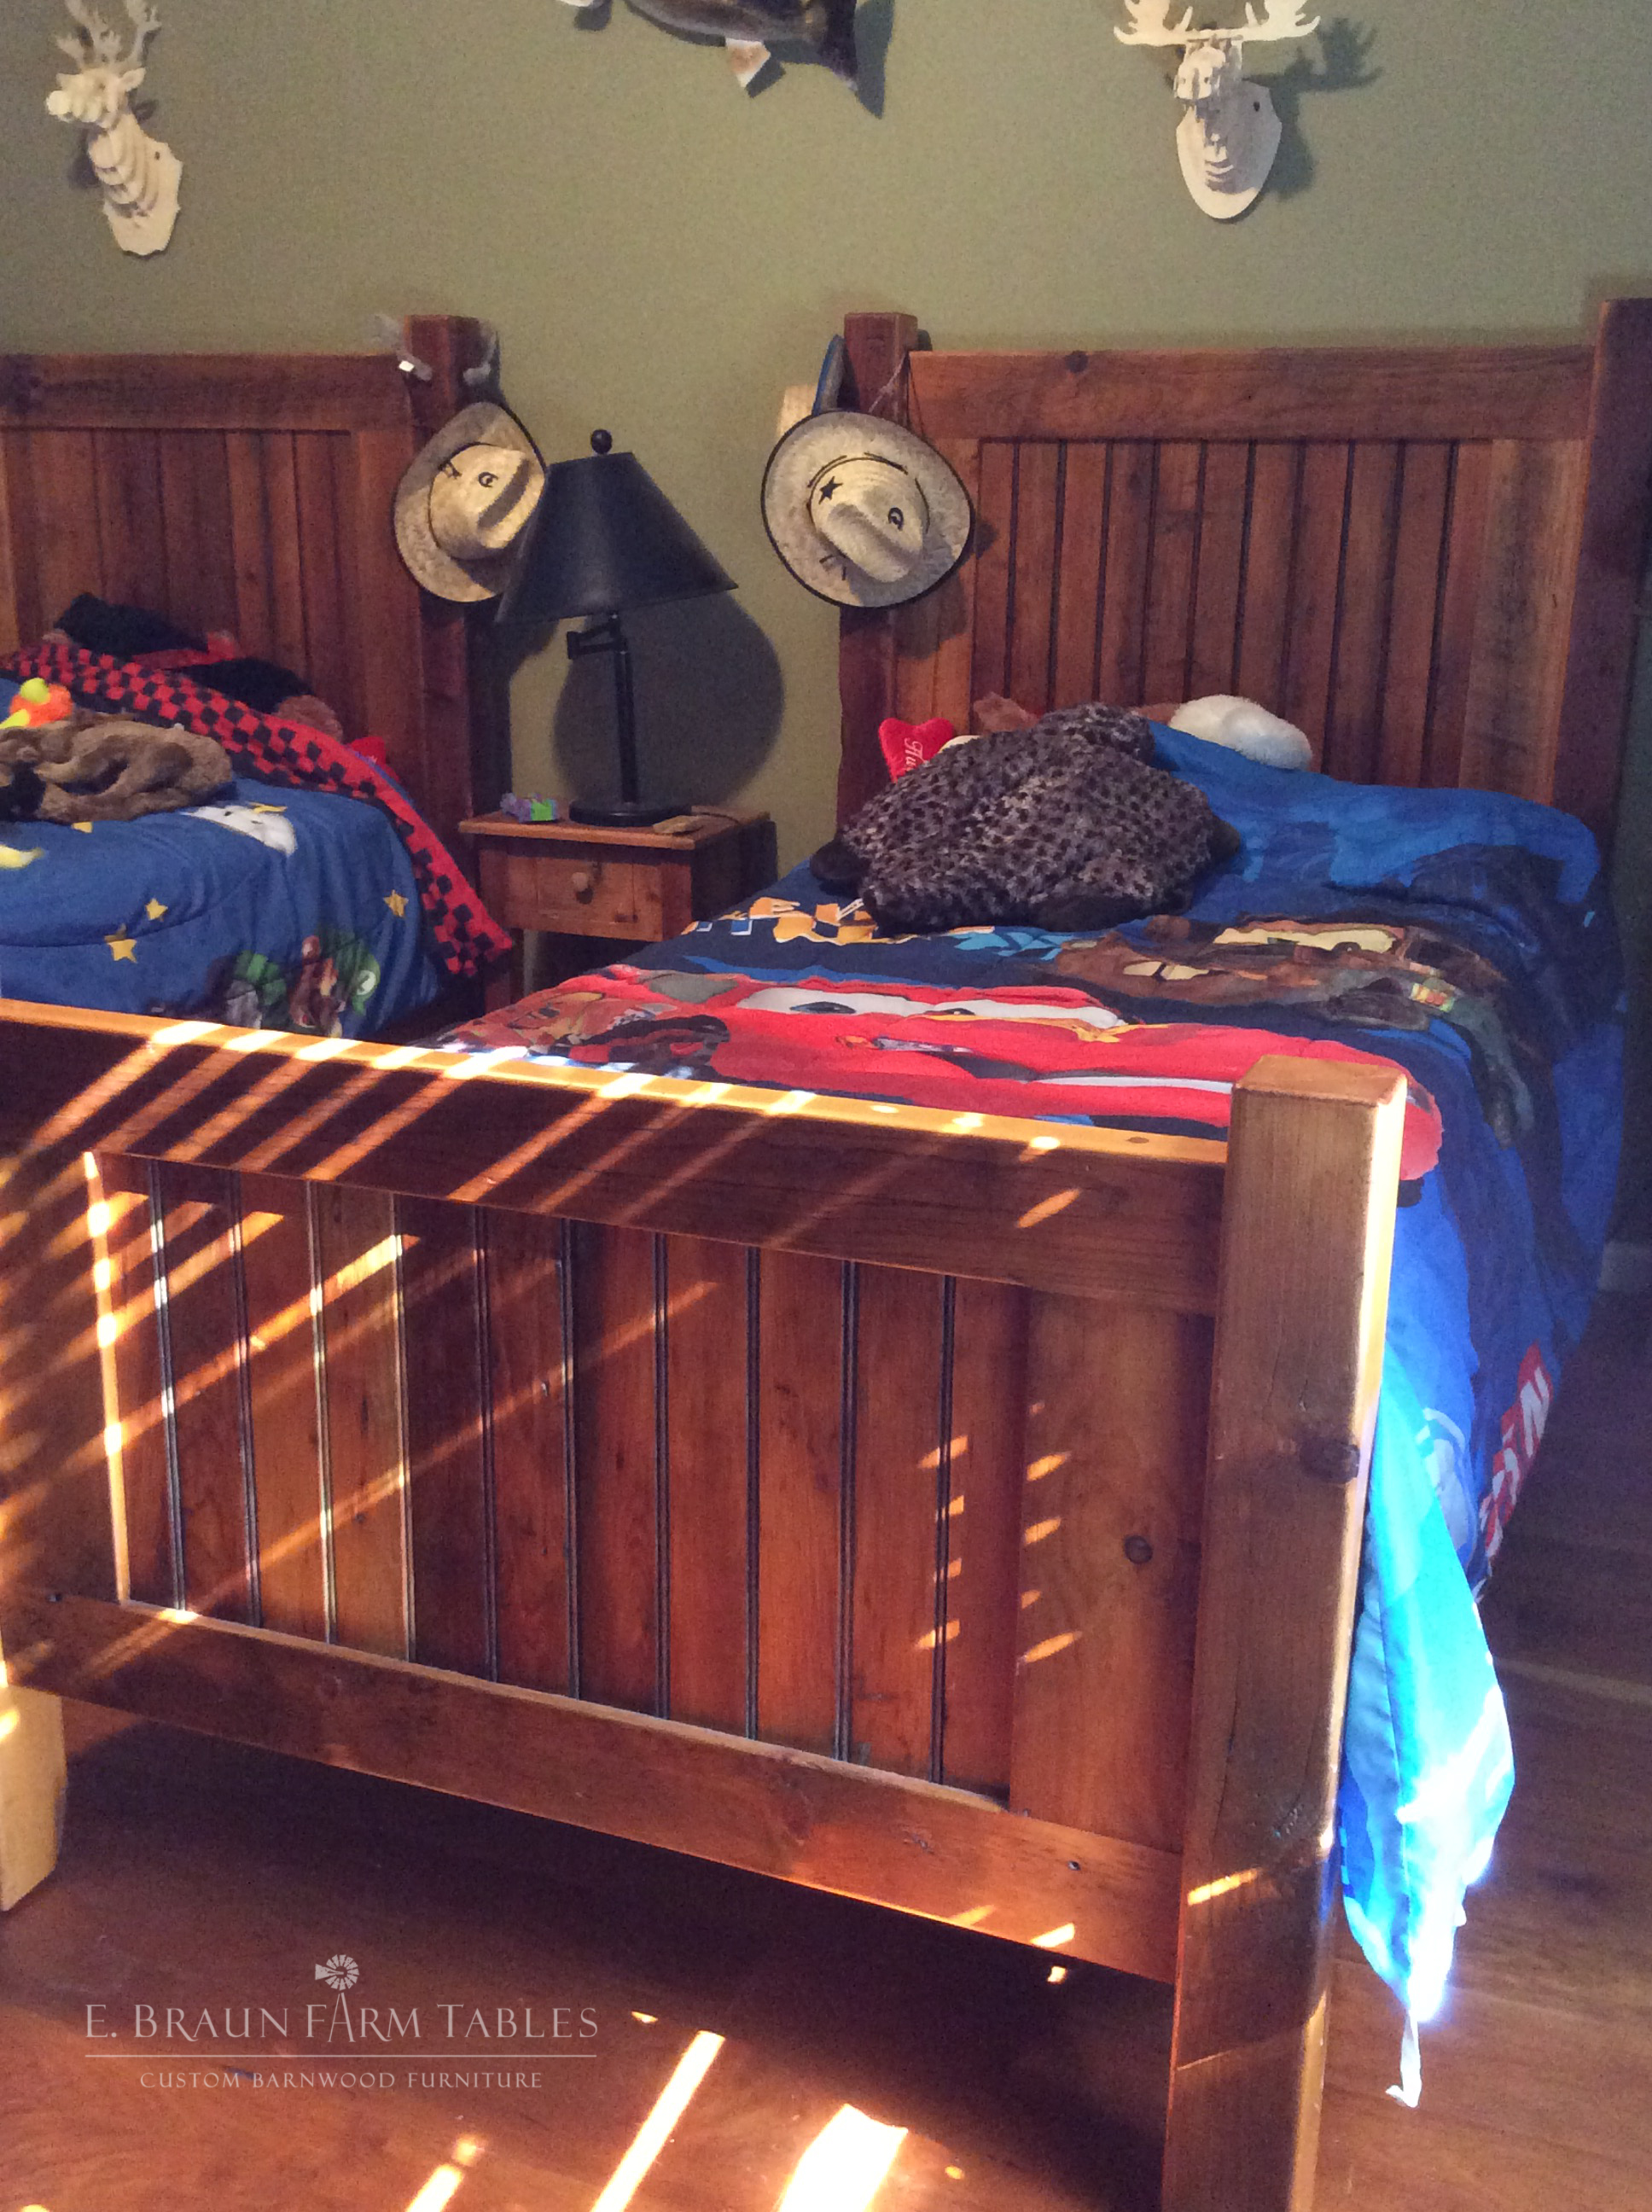 BR44 - Basic Twin Bed